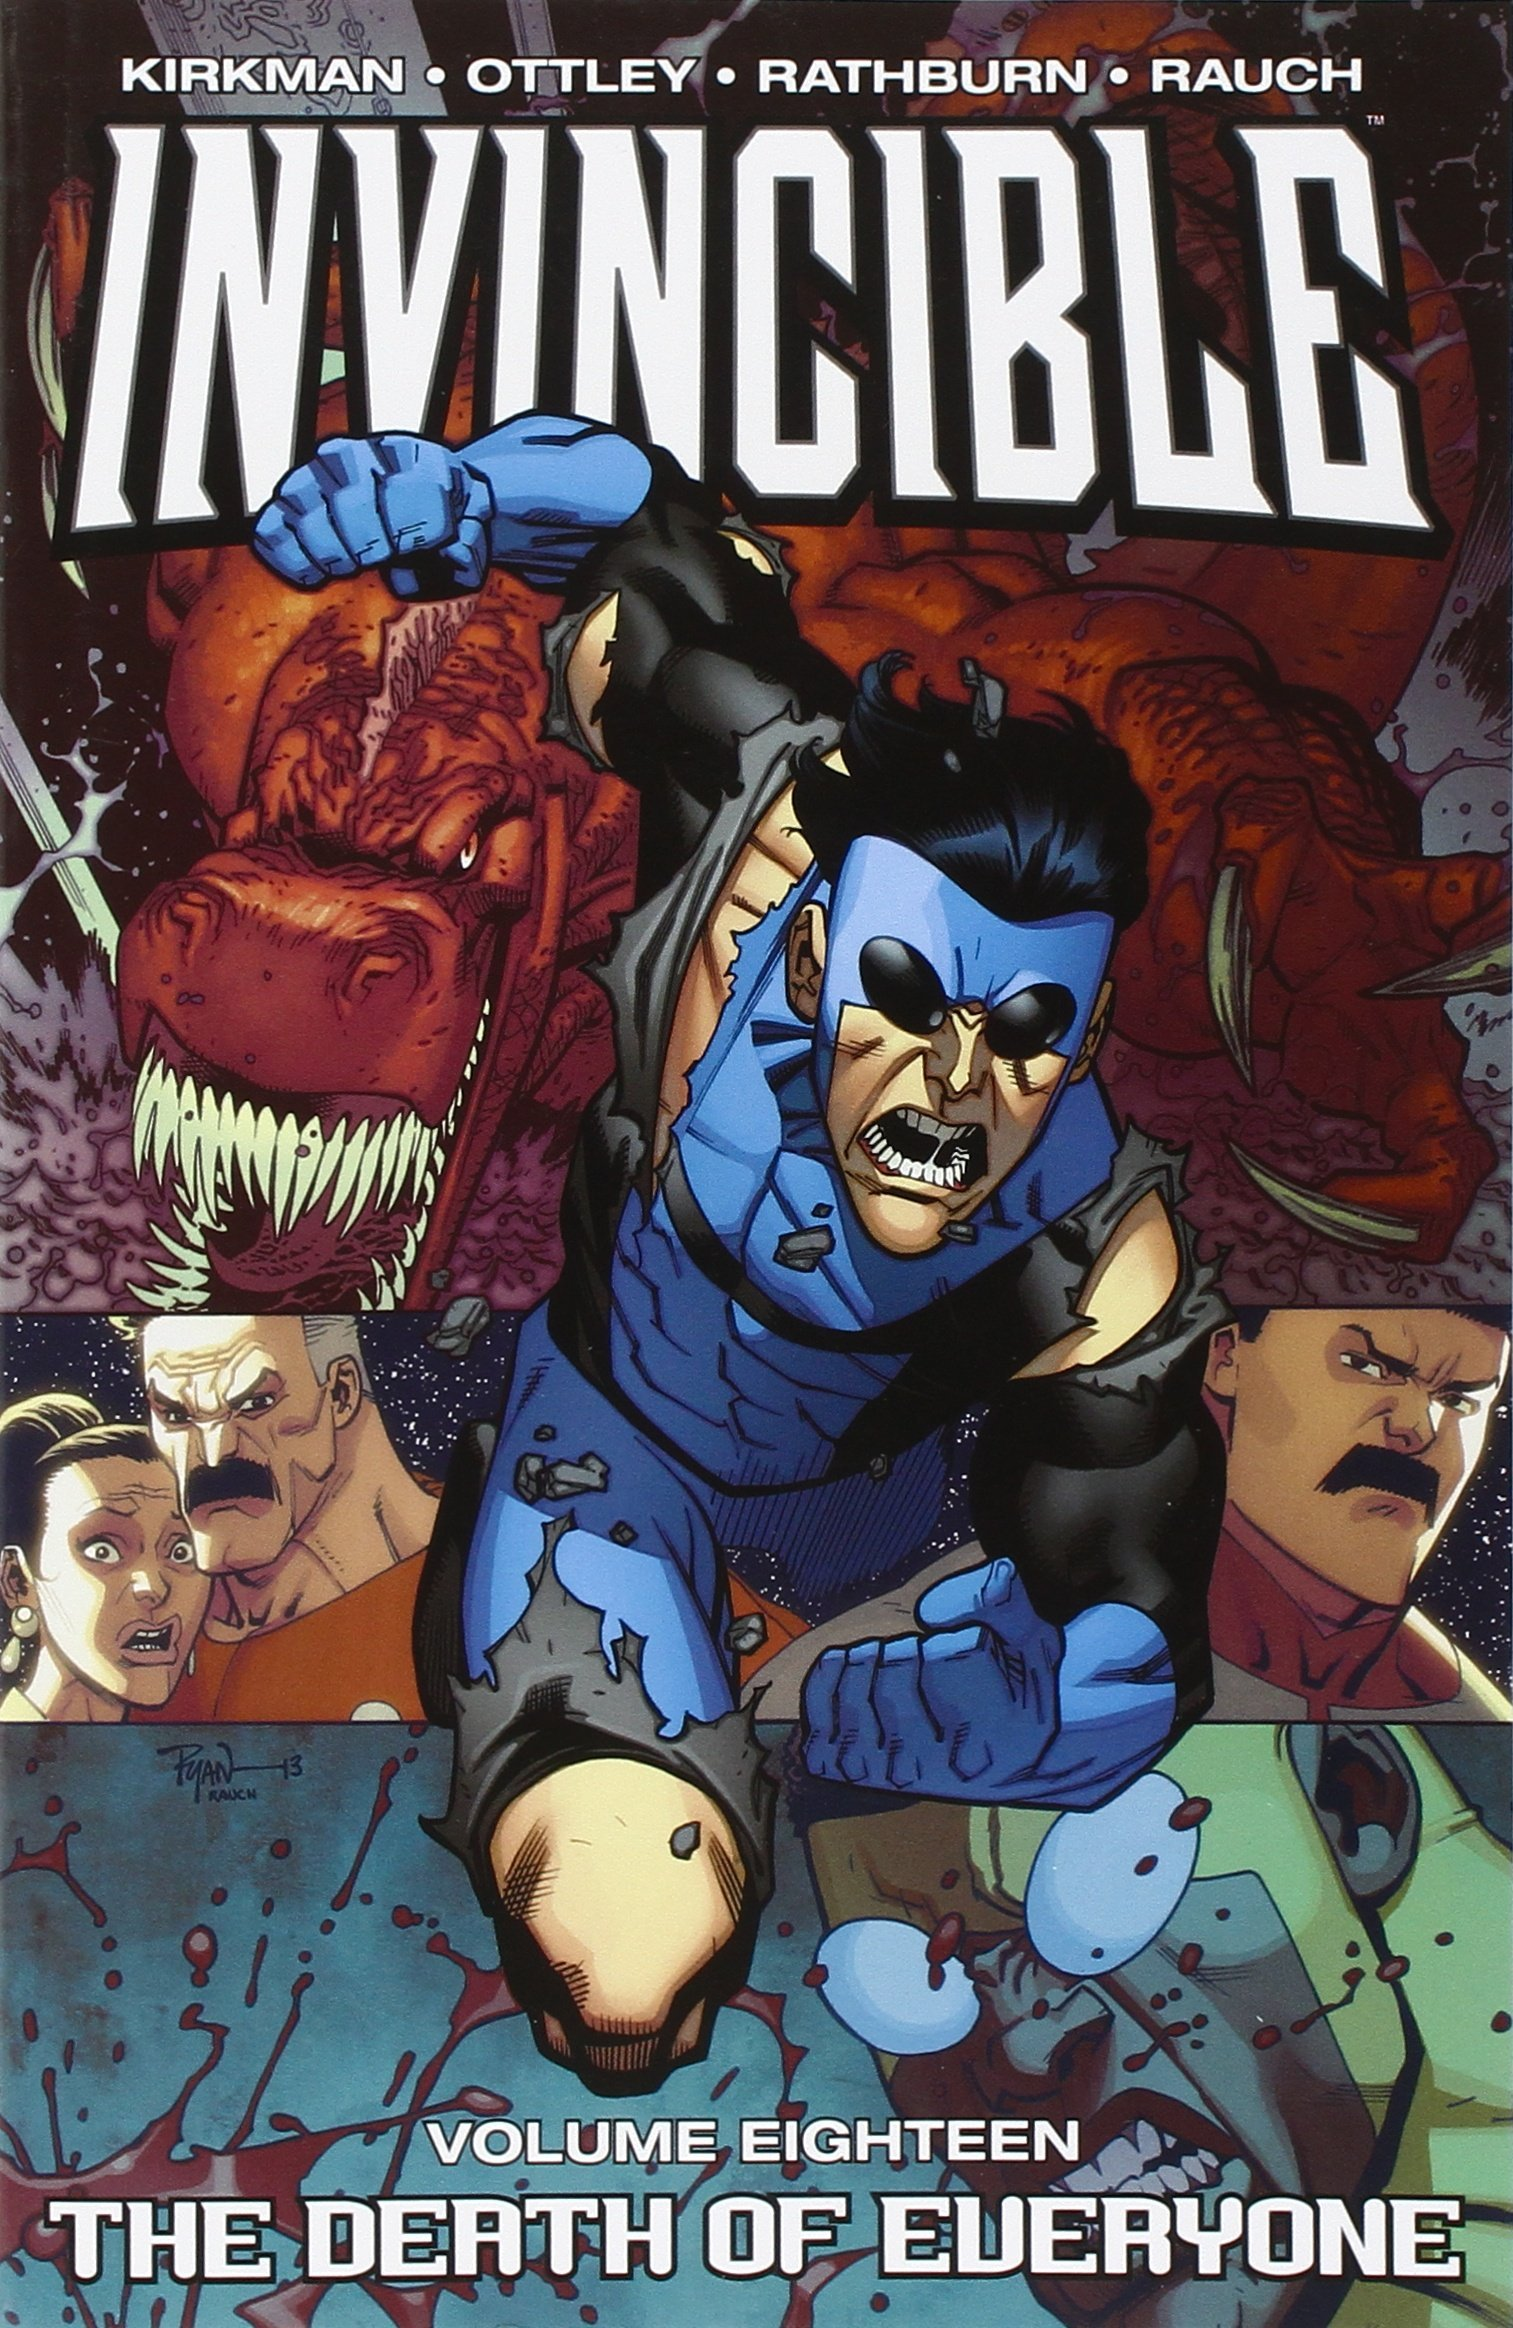 Invincible 18: The Death of Everyone (Inglese) Copertina flessibile – 13 ago 2013 Robert Kirkman Ryan Ottley Cliff Rathburn John Rauch